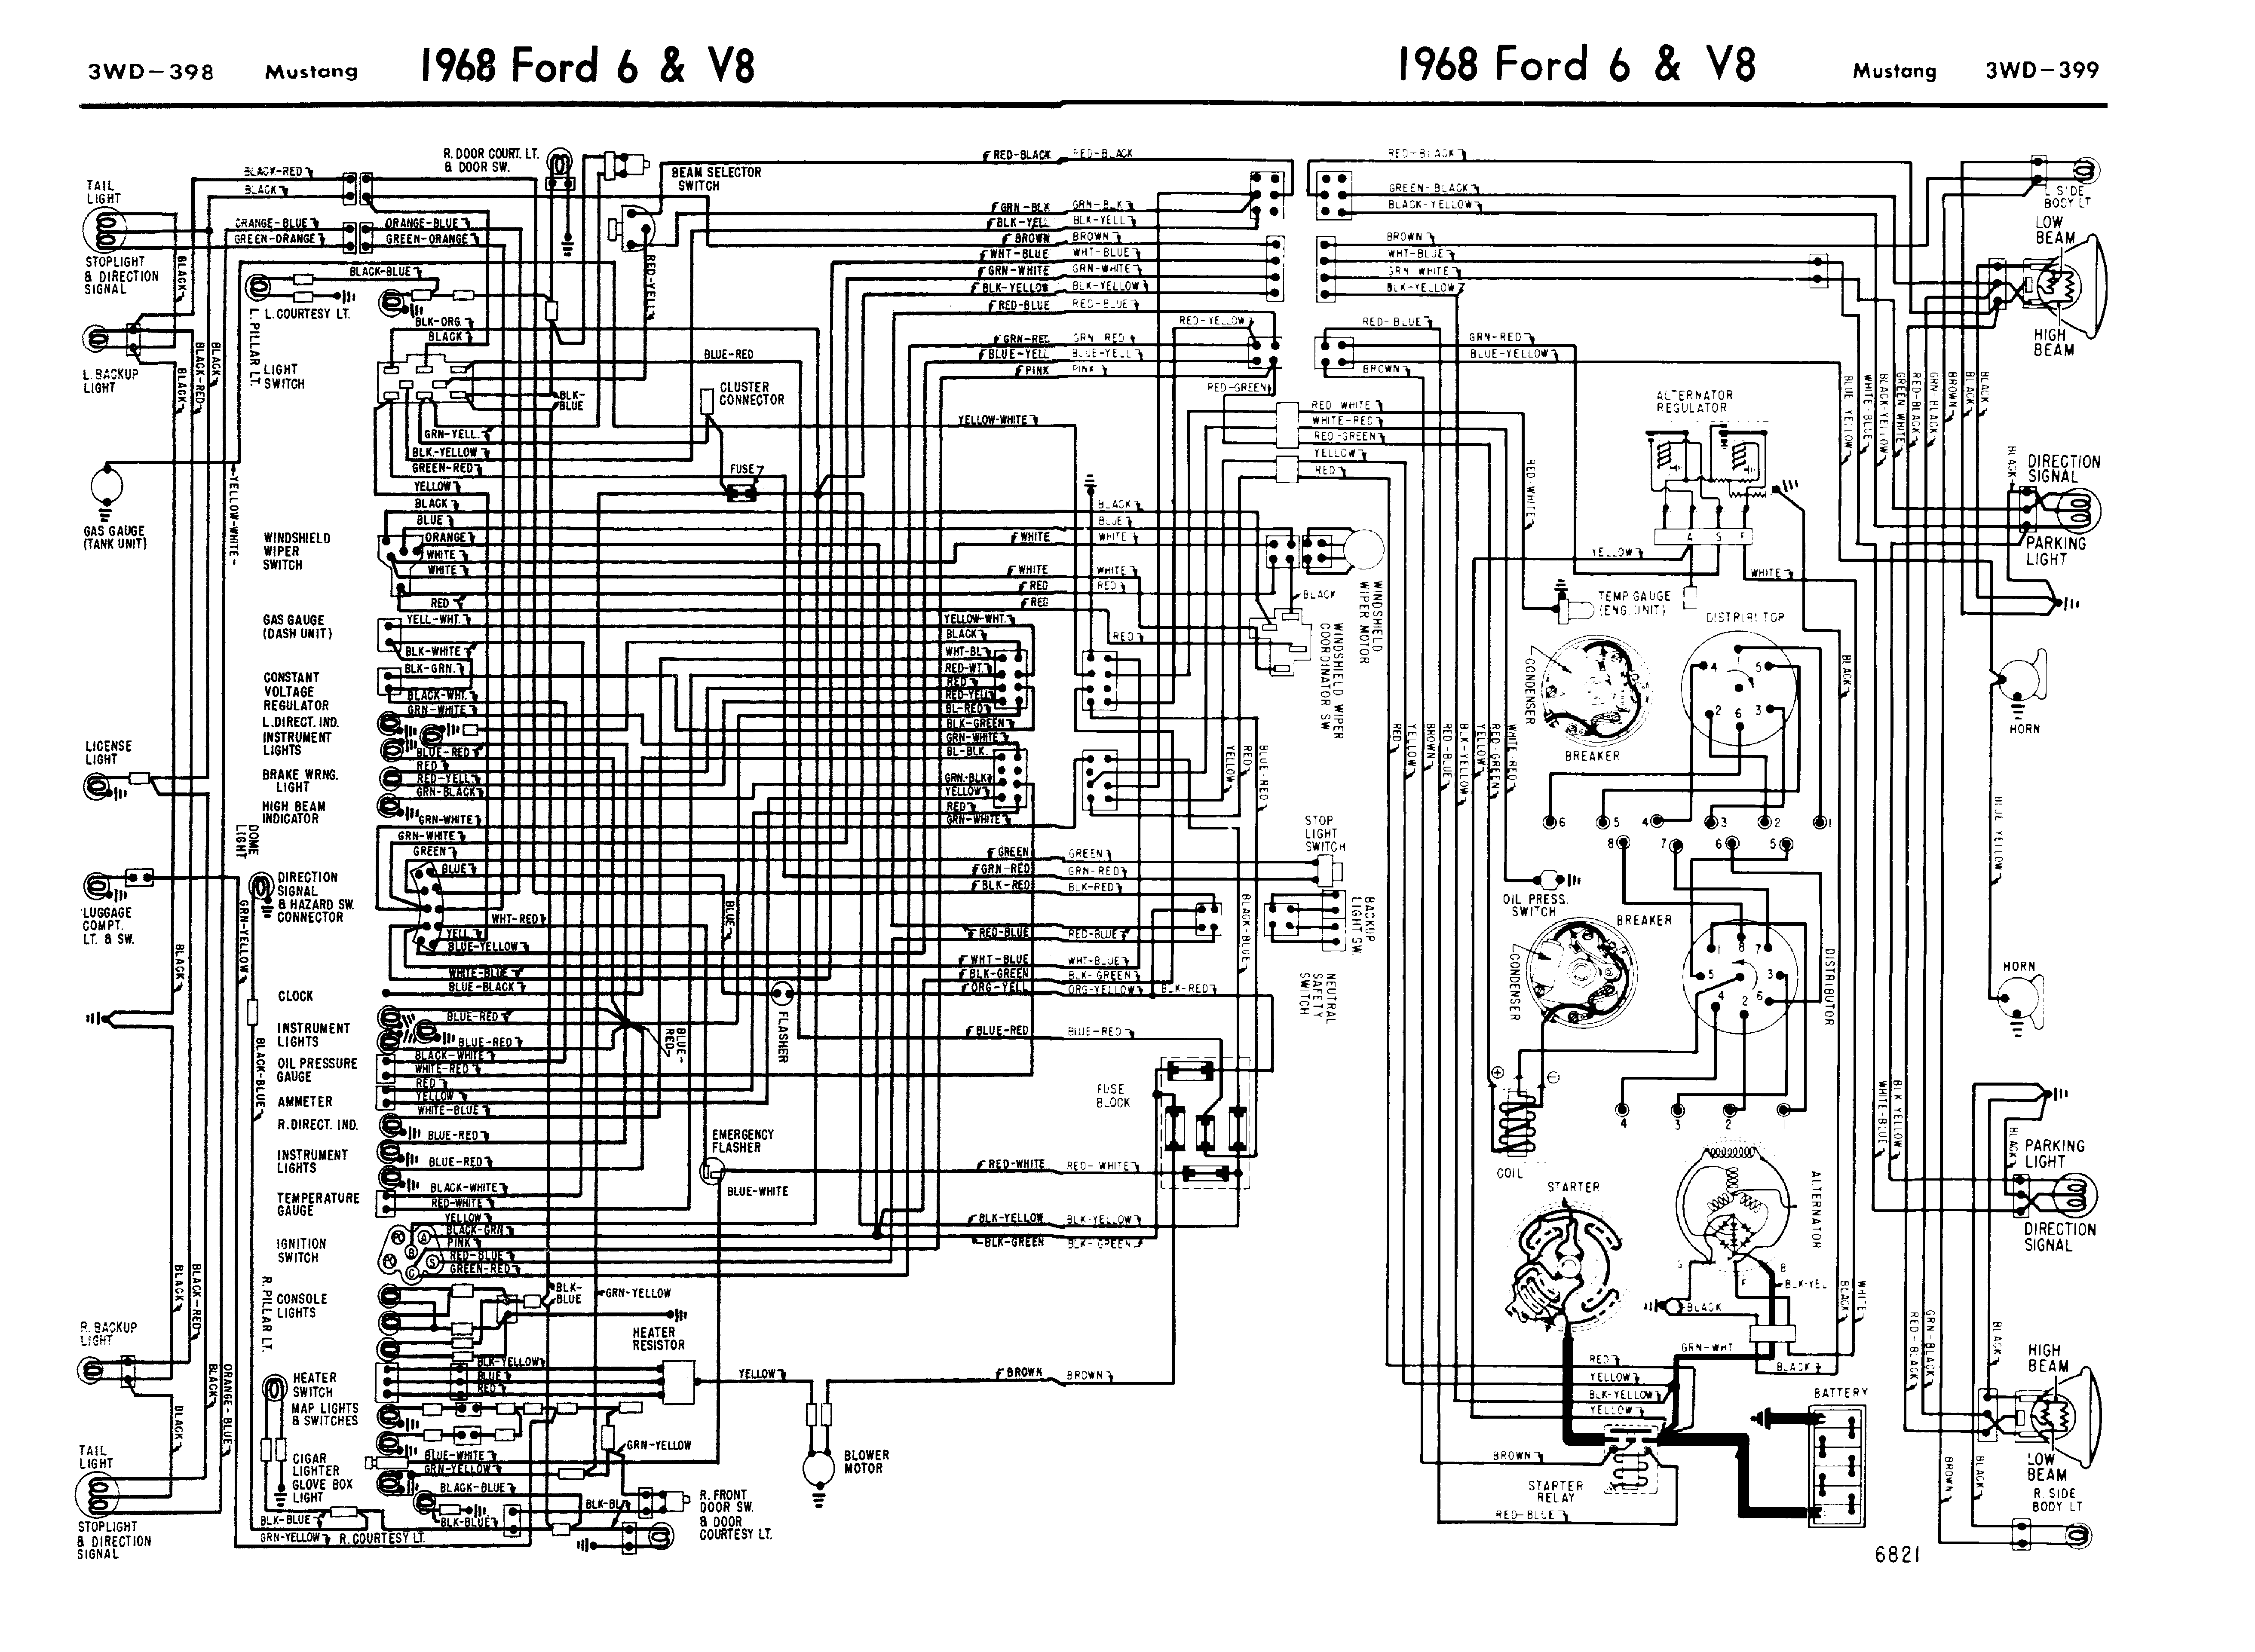 1968 Mustang Wiring Diagrams - Read All Wiring Diagram on